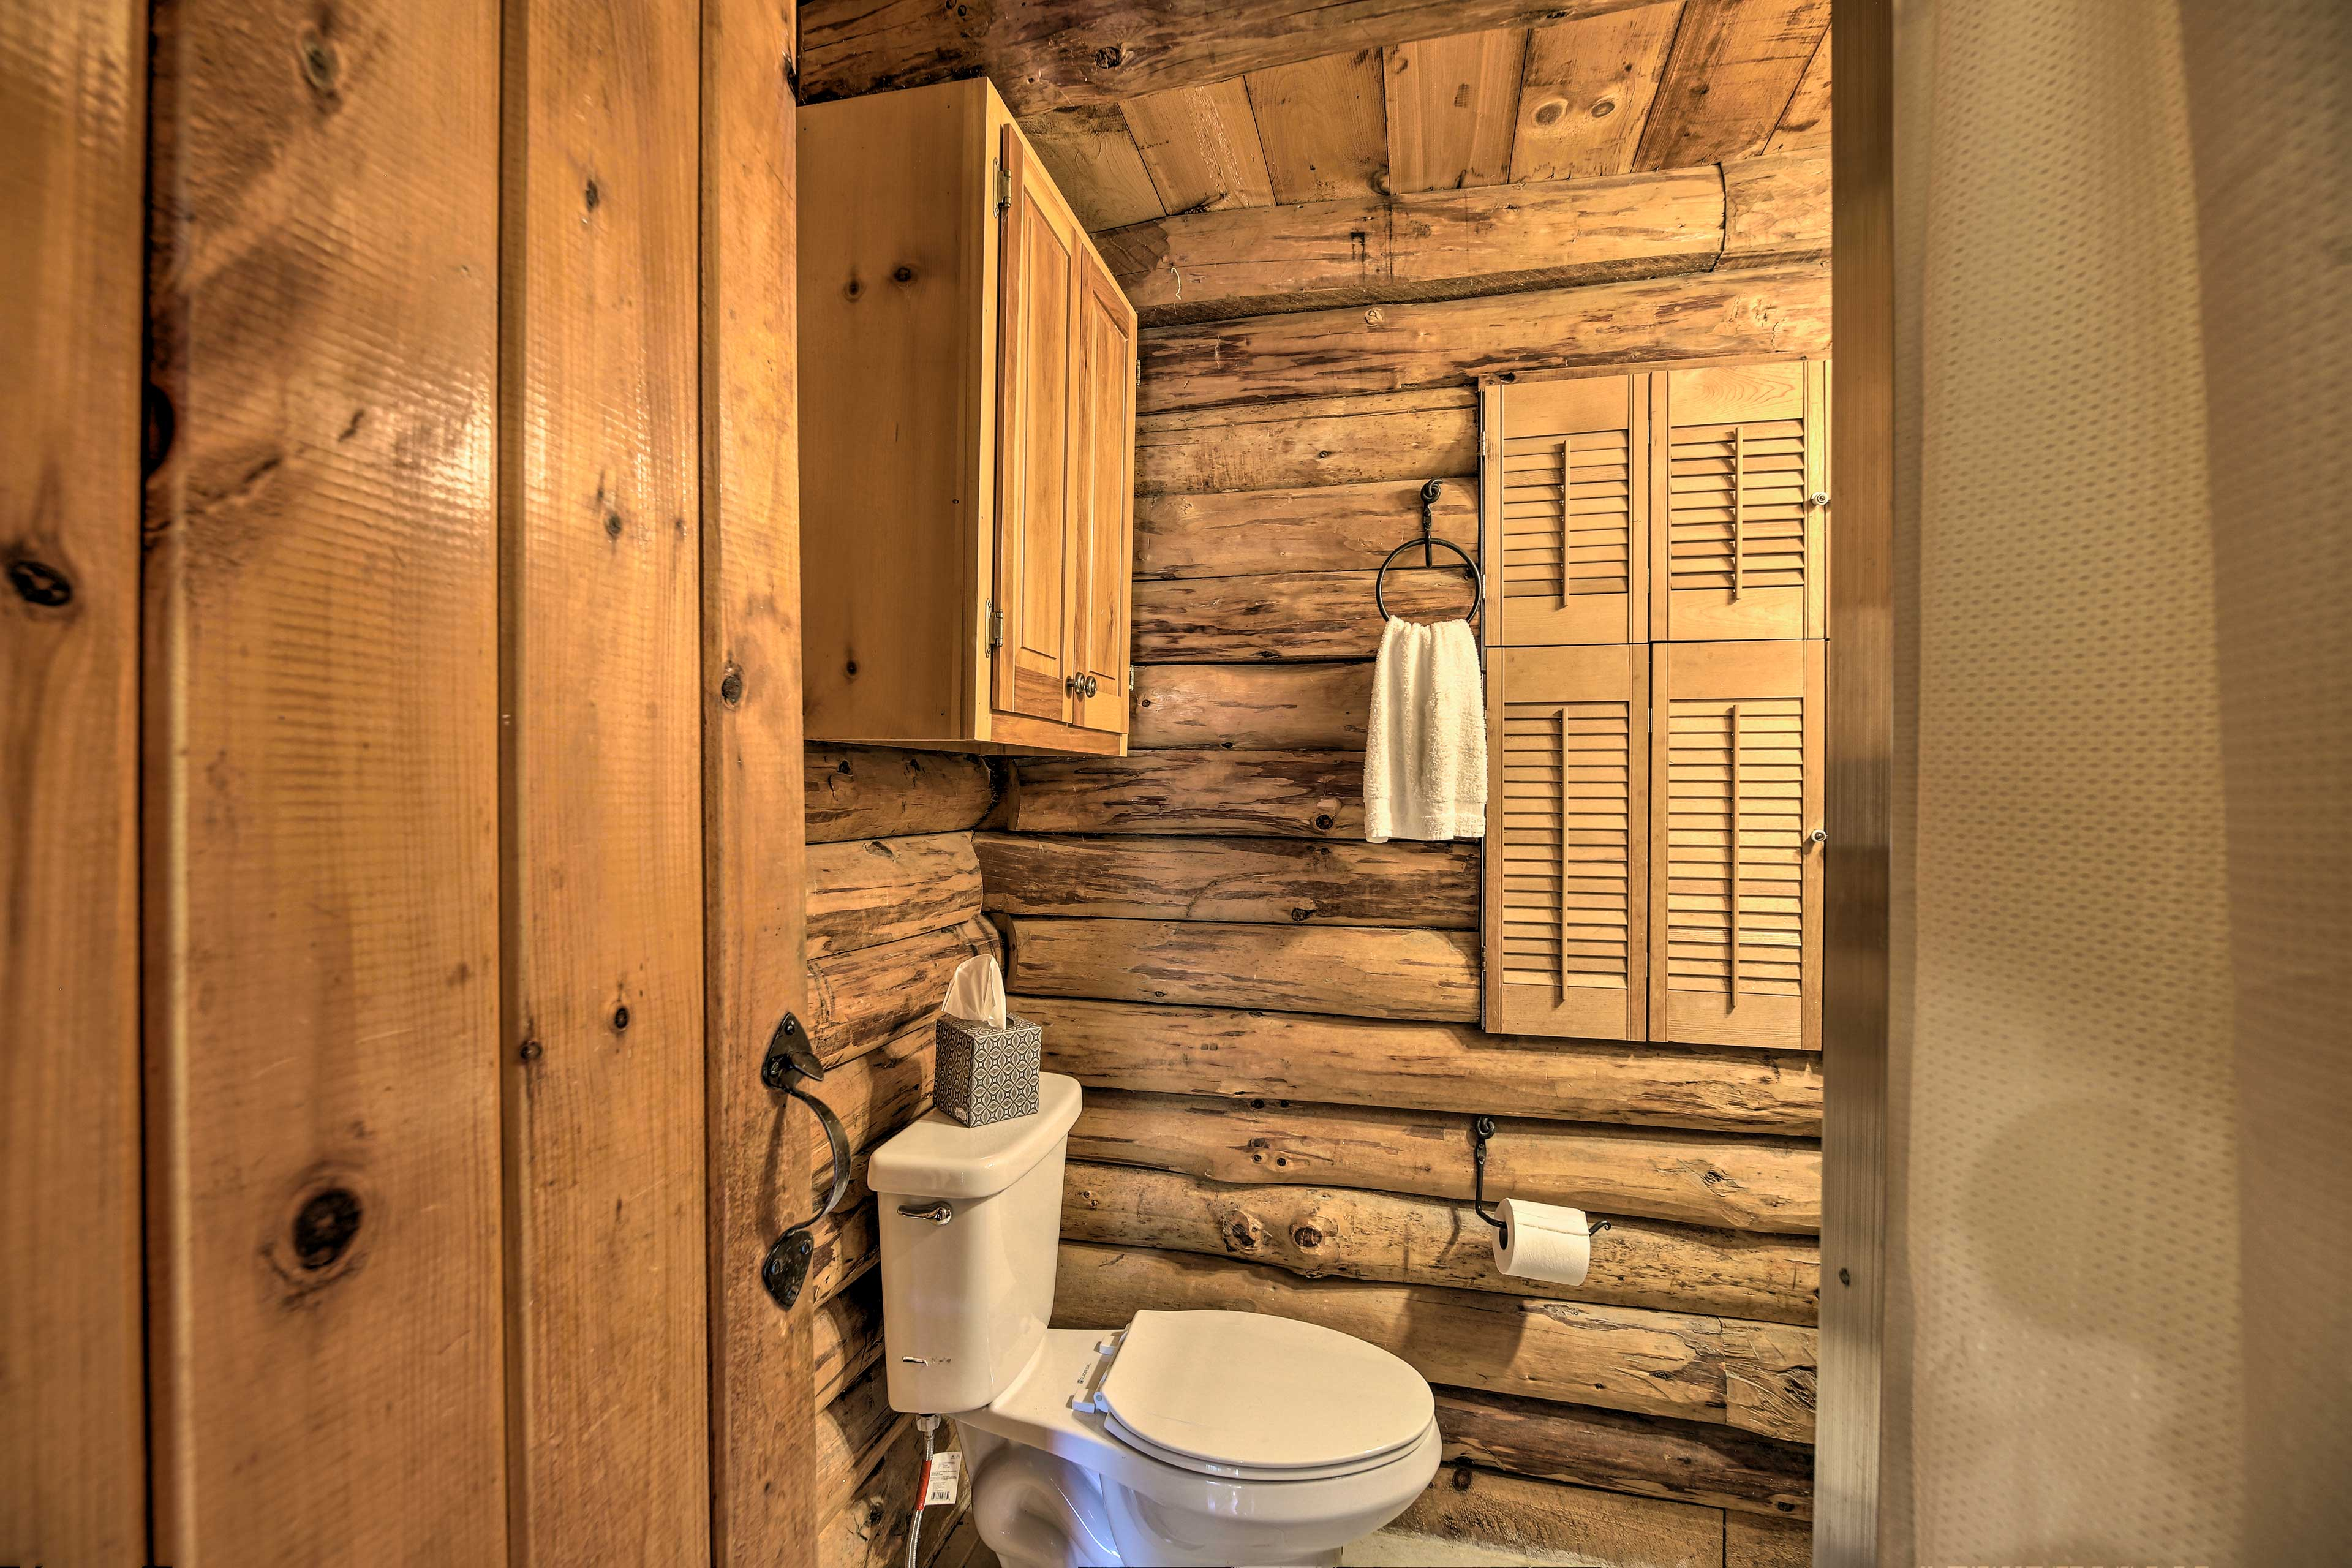 There are 3 full bathrooms in this home.